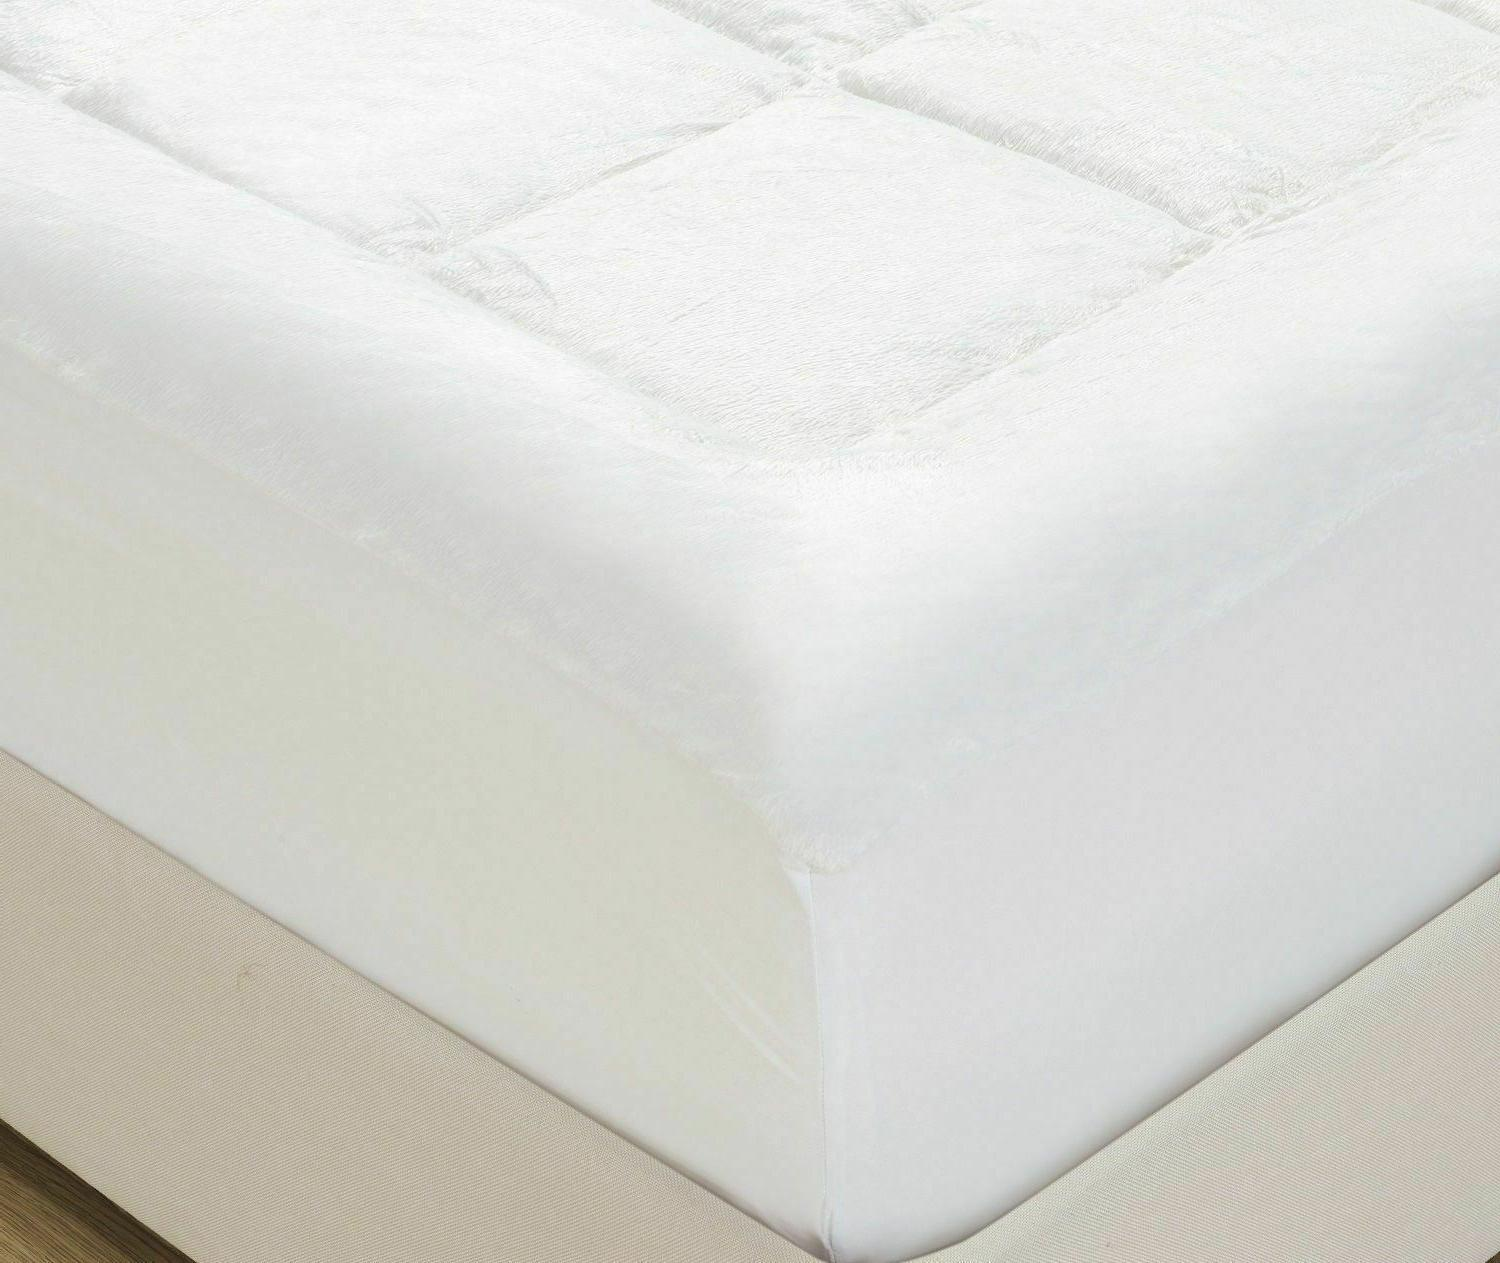 Mellanni Microplush Pad, Soft Overfilled Fitted Cover